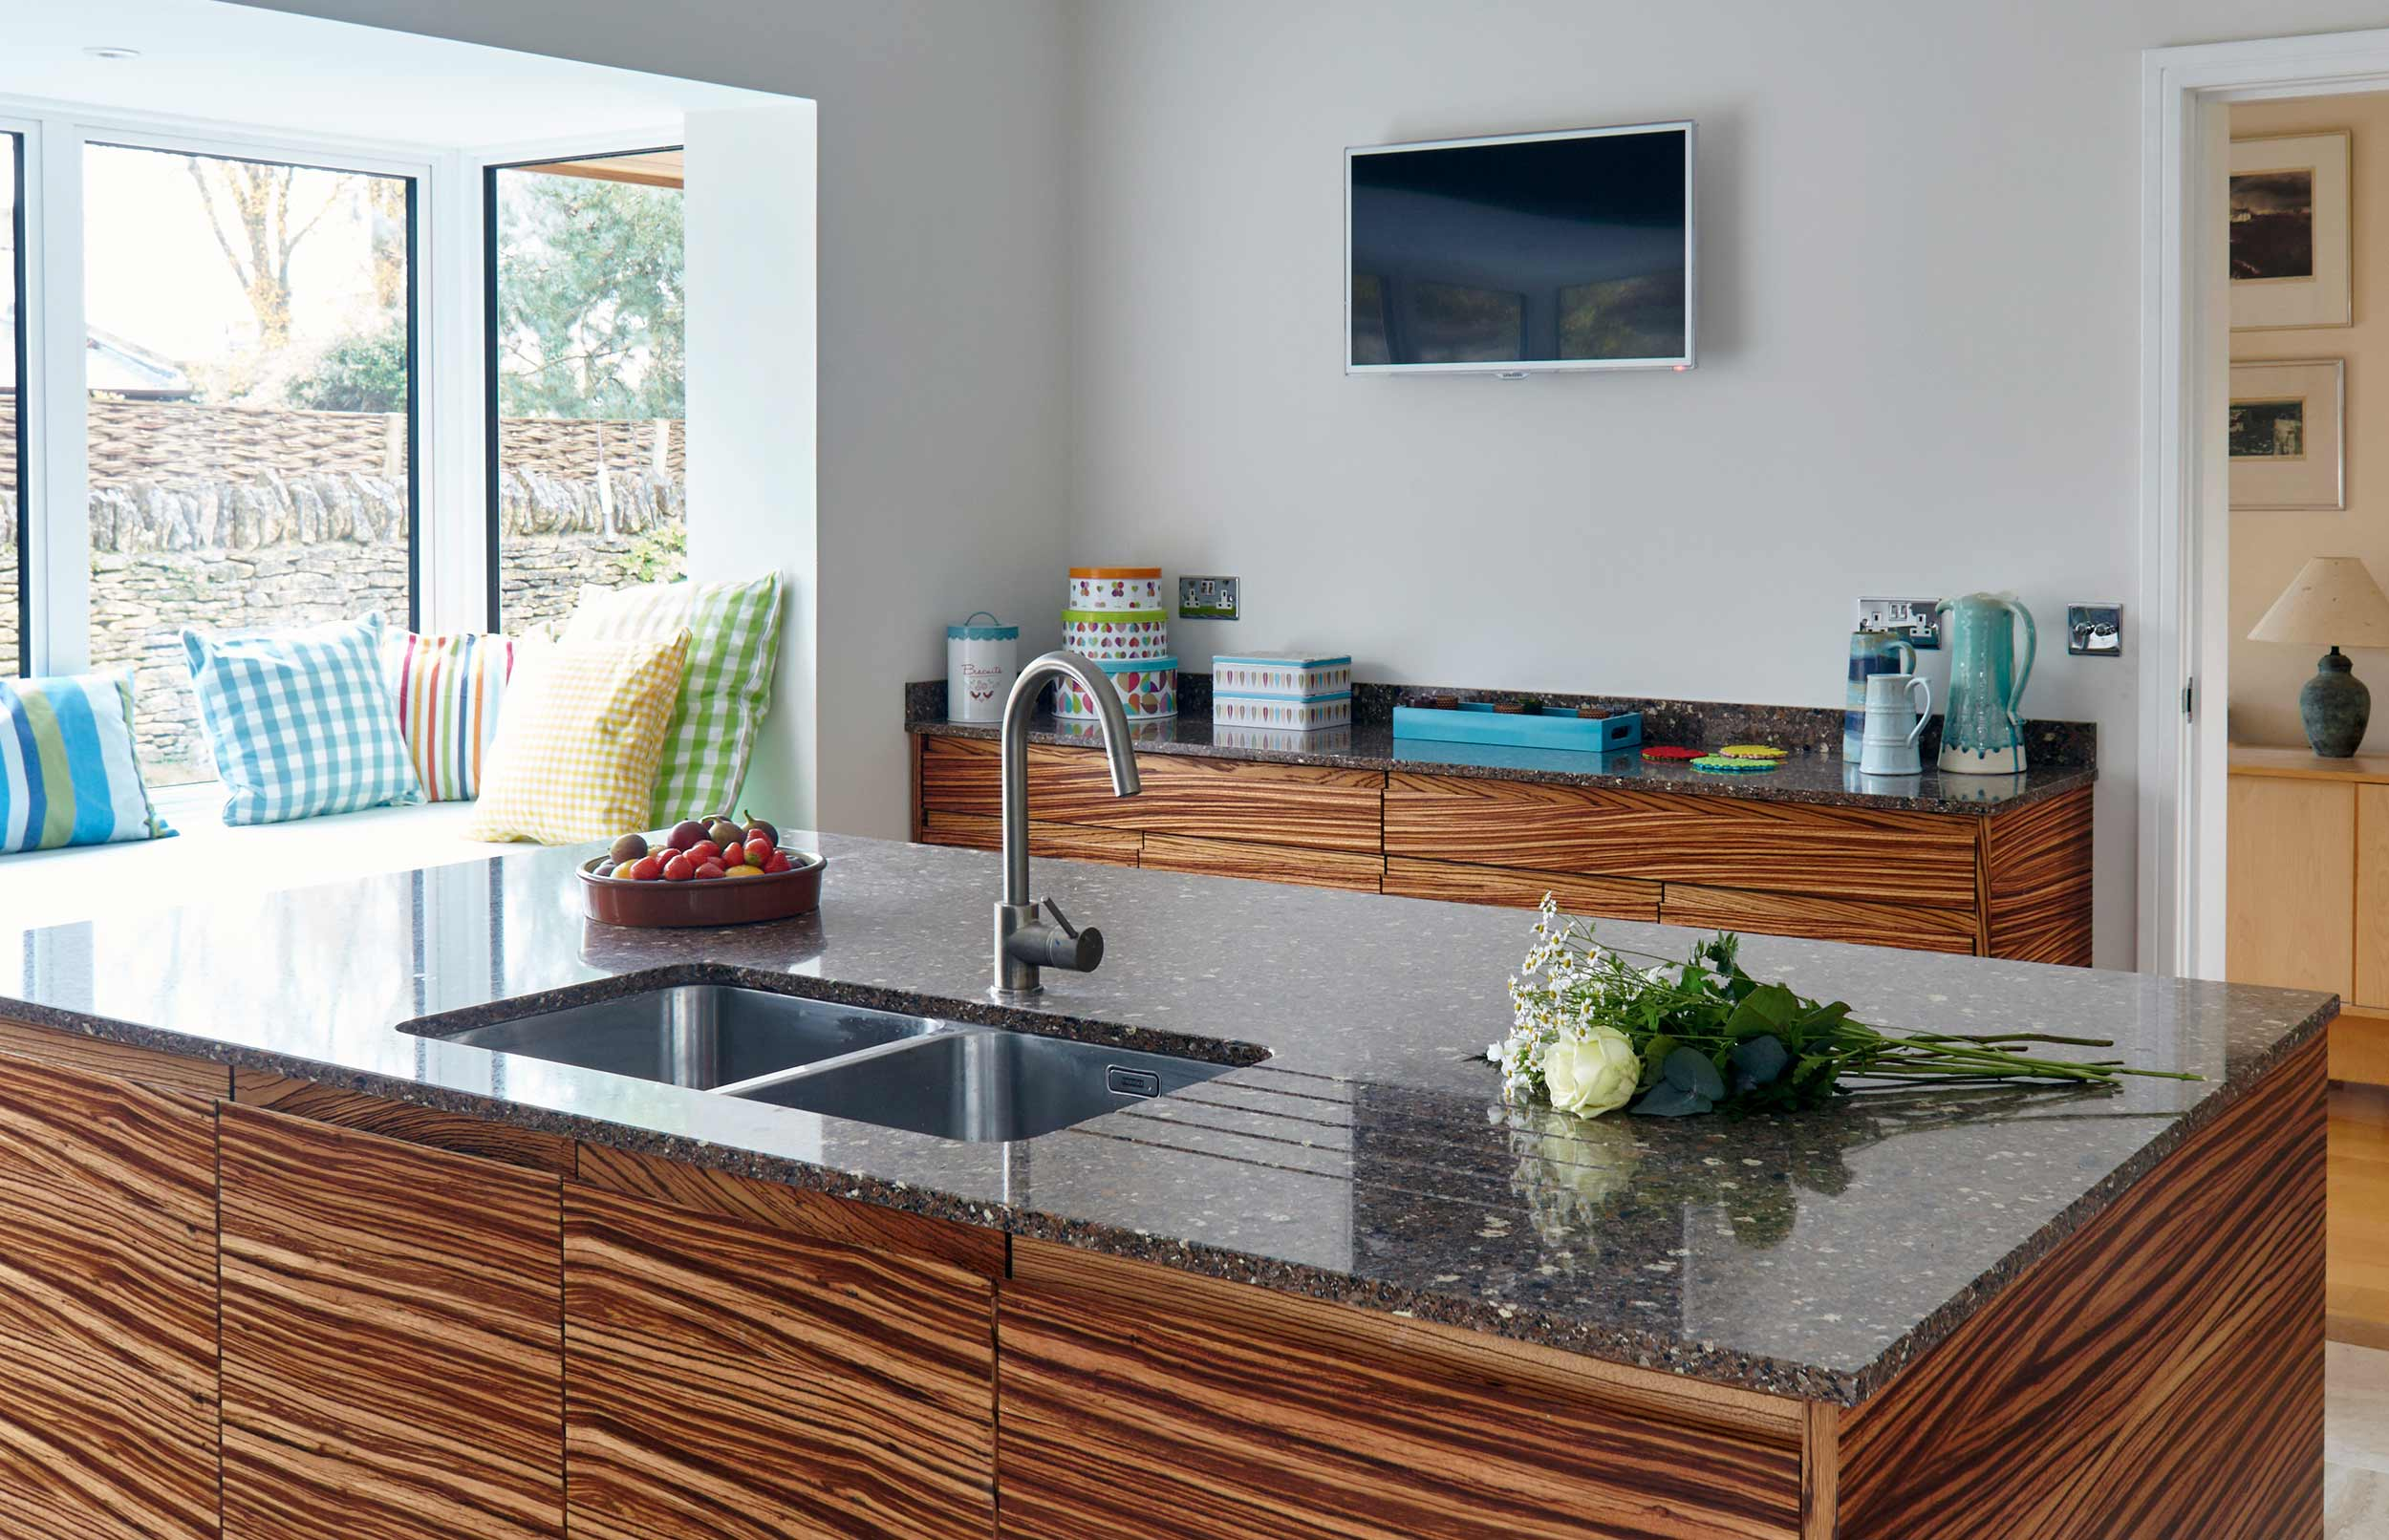 Conversion Bespoke Kitchen - View of Island with Sink and Preparation Area